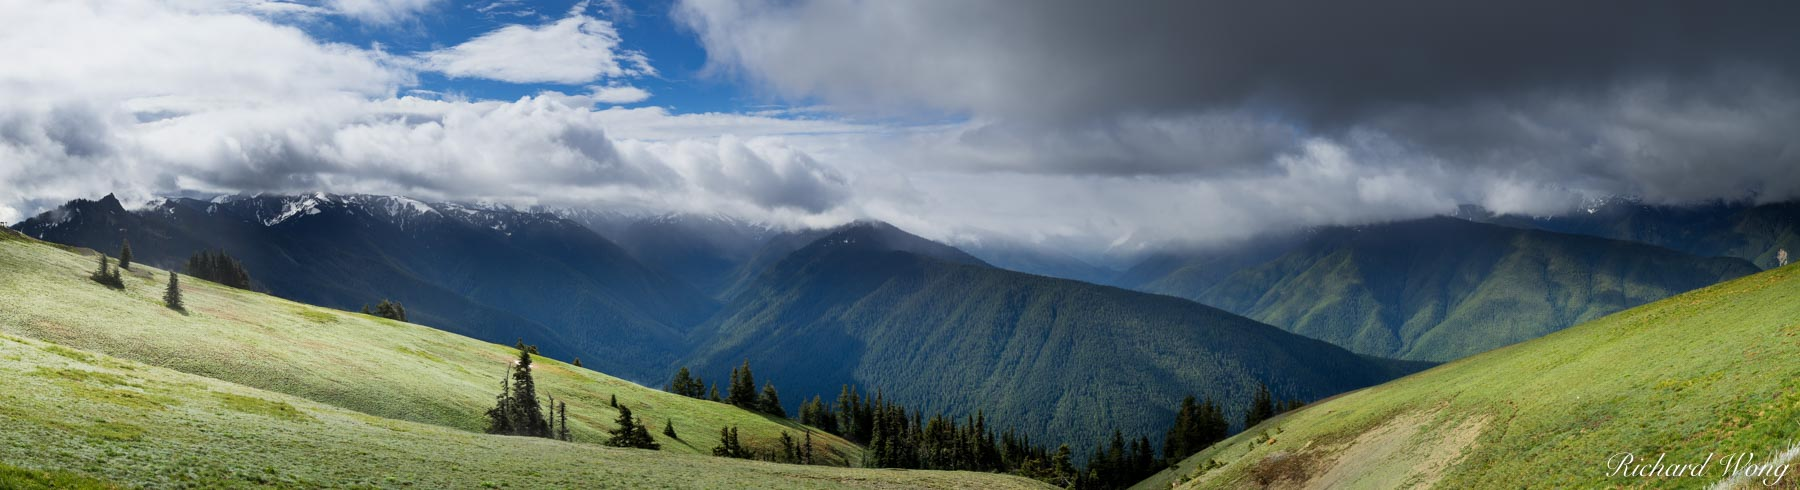 Hurricane Ridge Panoramic, Olympic National Park, Washington, photo, photo